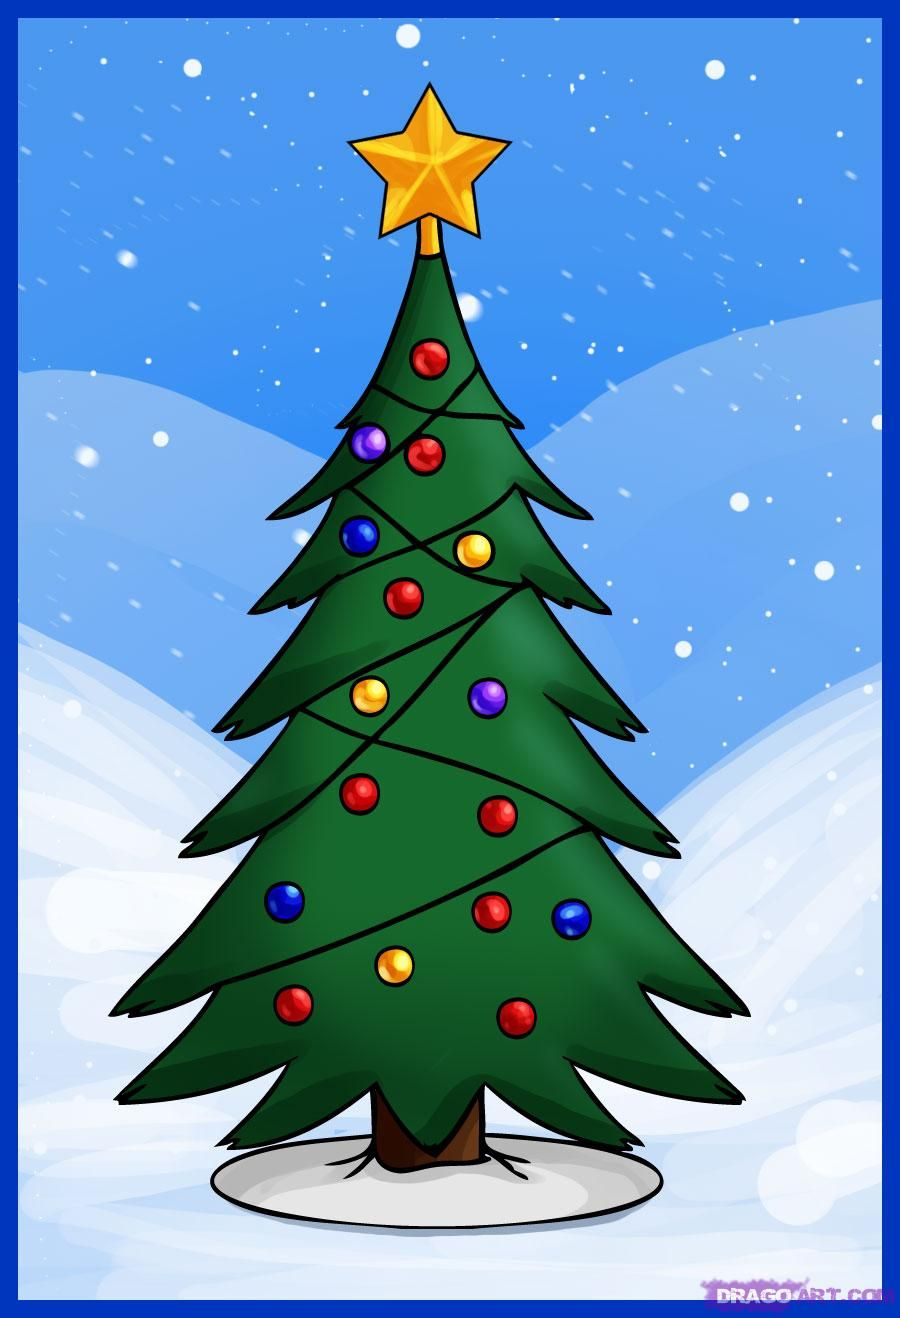 How To Draw A Christmas Tree Christmas Tree Drawing Christmas Tree Drawing Easy Christmas Paintings Download this simple cartoon hand painted christmas decorations, decor, simplicity, handpaint png clipart image with transparent background or xmas tree wallpapers 1080 x 1920 wallpapers disponible en téléchargement gratuit. christmas tree drawing christmas tree